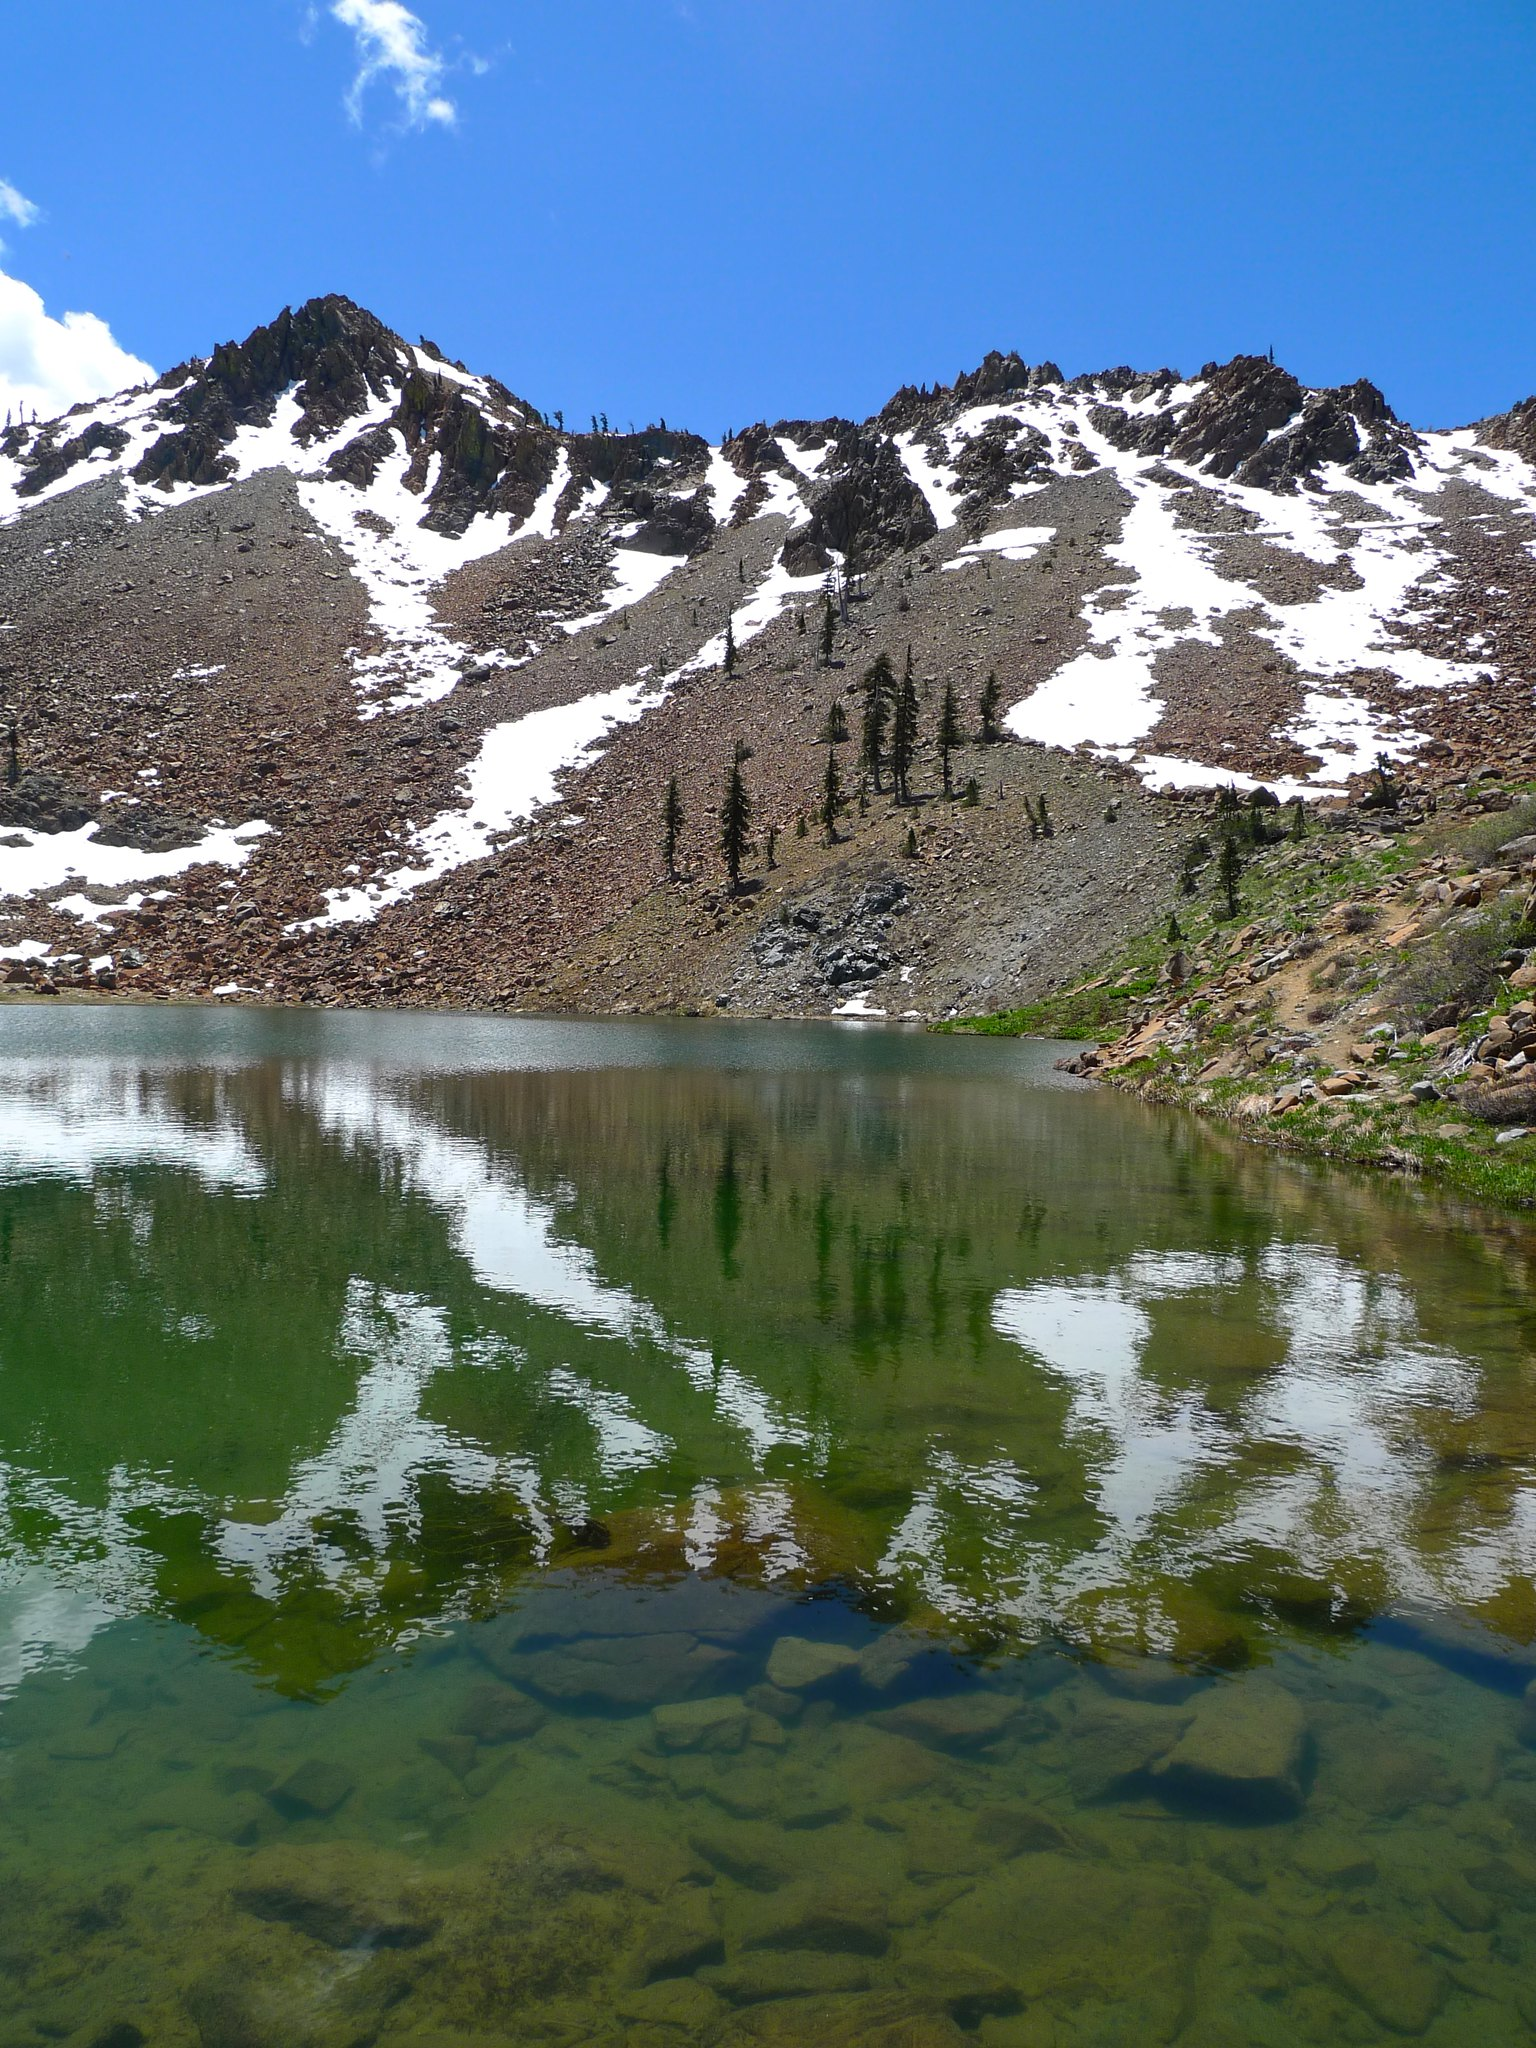 Deer Lake. The trail from Deer Pass to Summit Lake is visible as a slash along the talus and snow on the right.